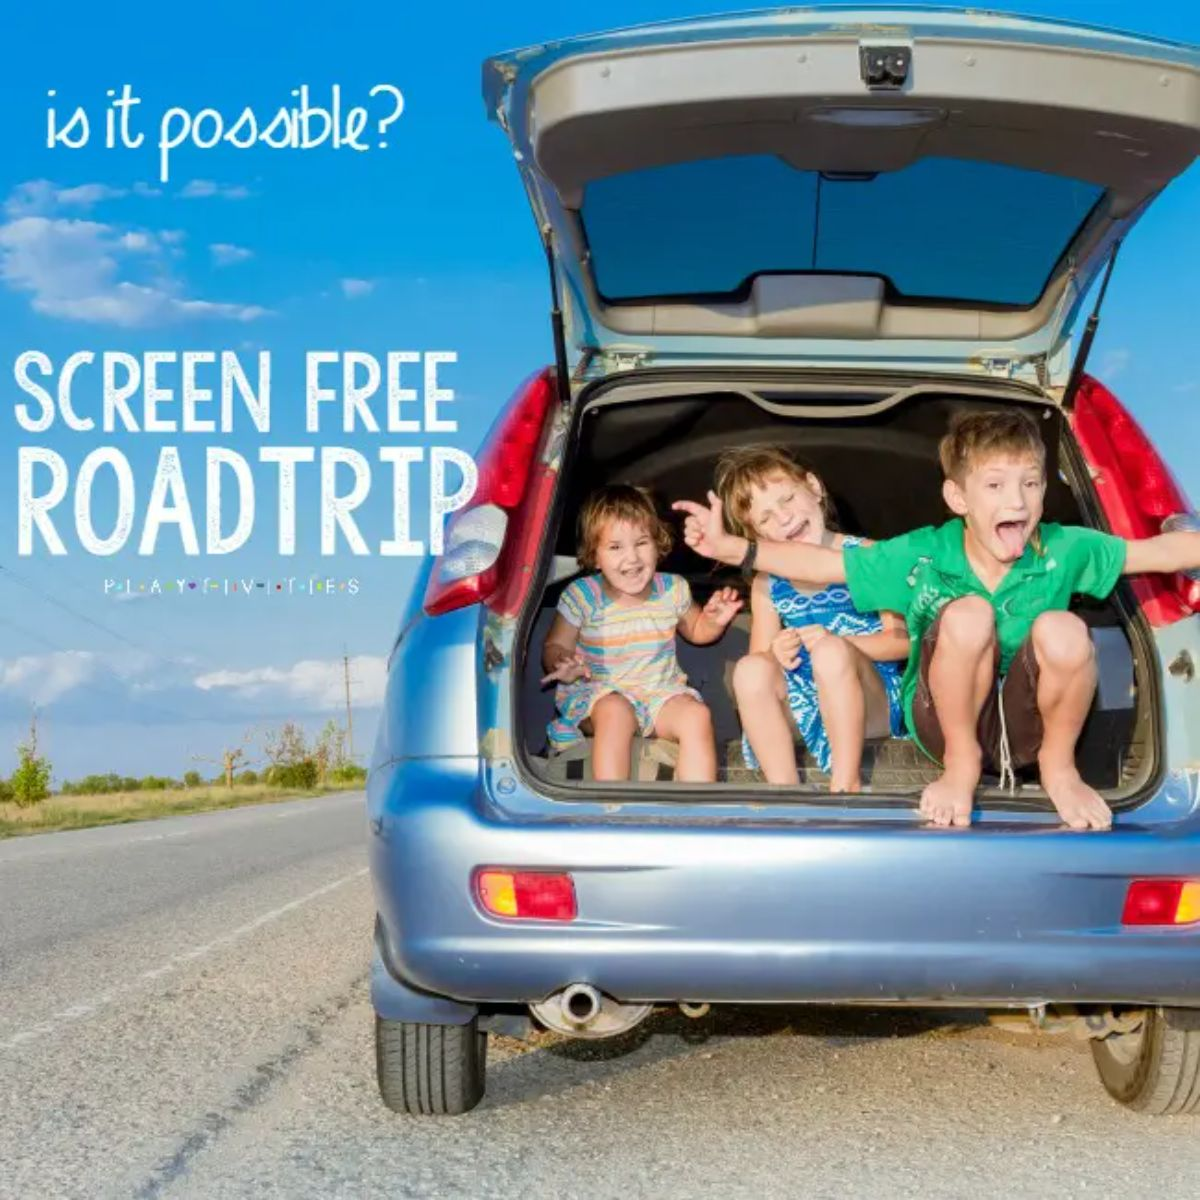 """3 children sit in the trunk of a blue car, smiling at the camera. The text reads """"is it possible? Screen free roadtrip"""""""